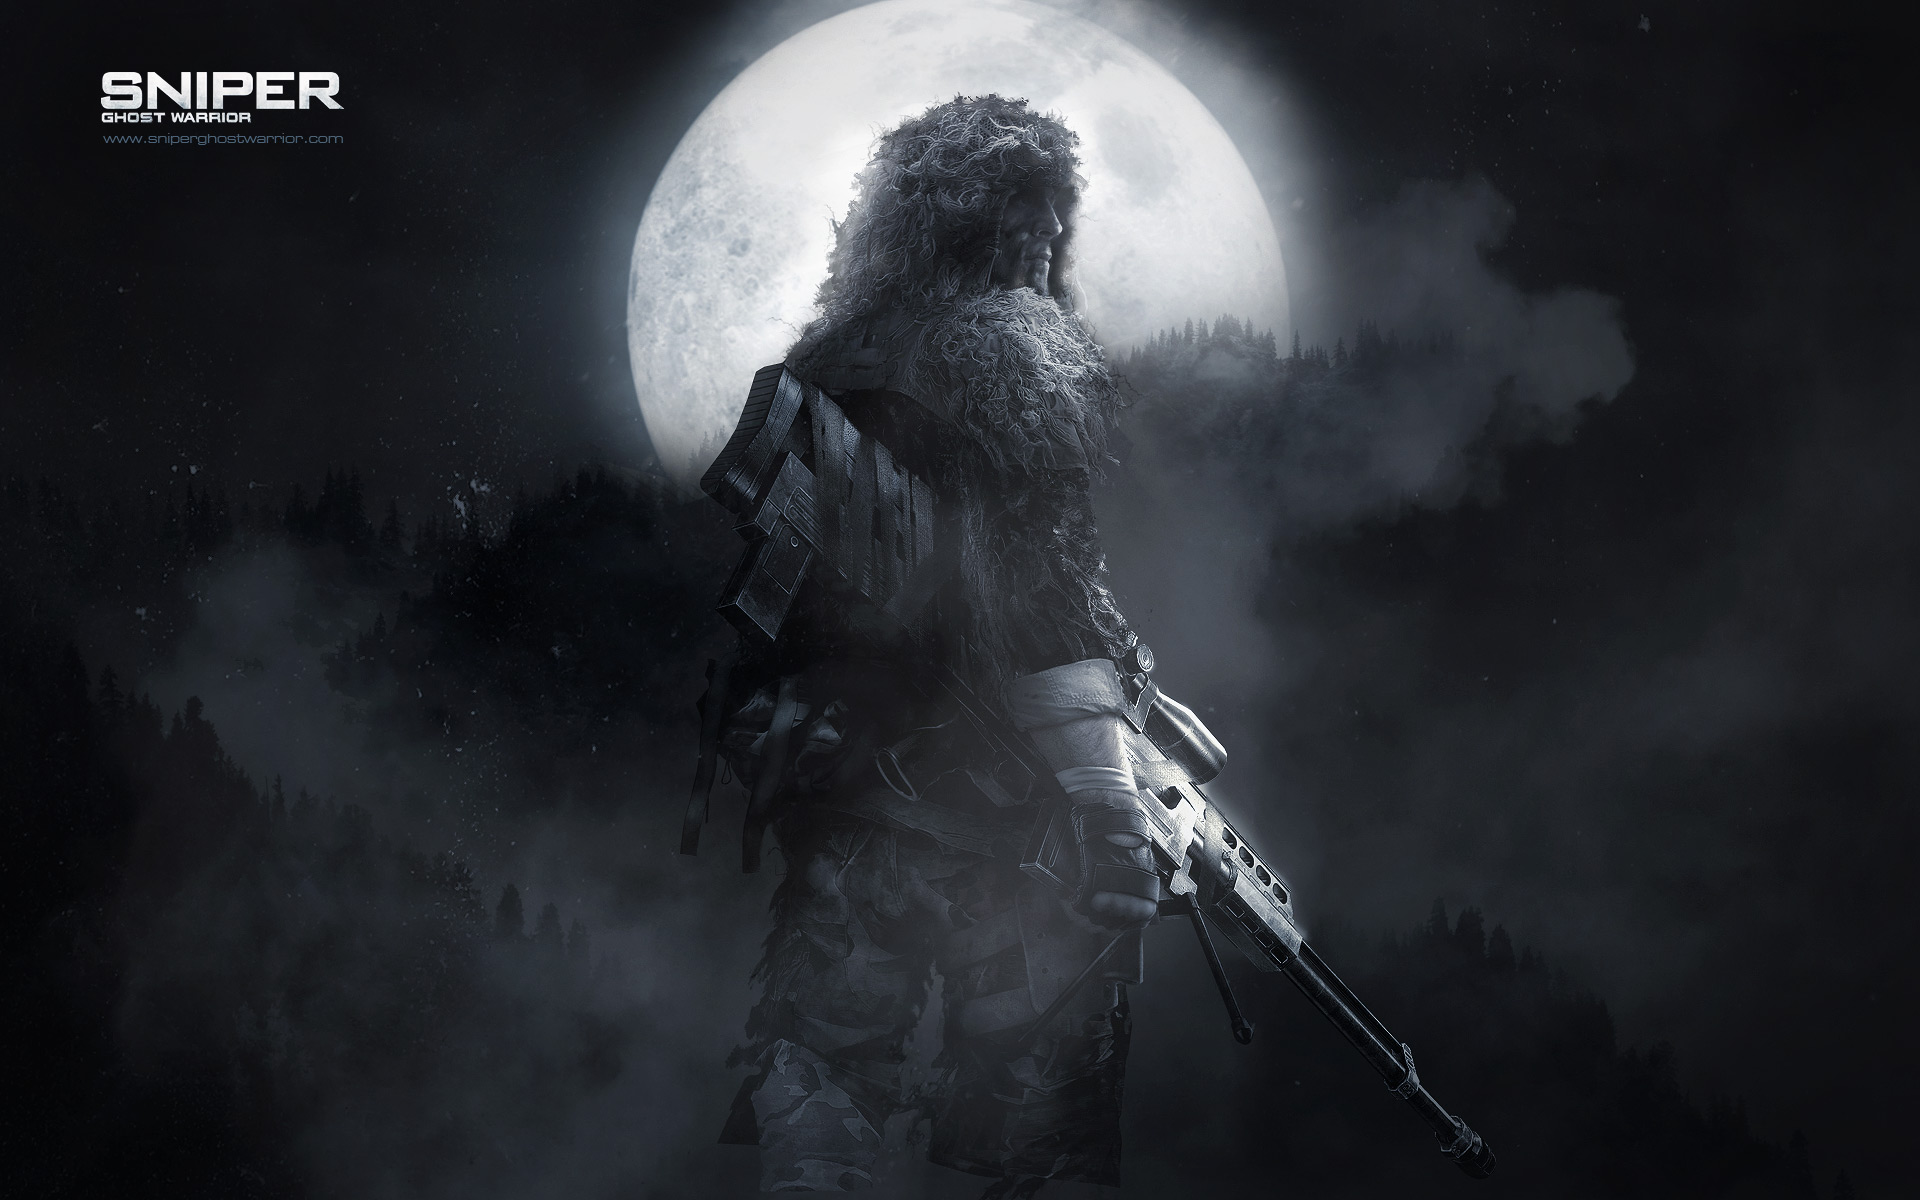 Sniper Ghost Warrior Wallpapers Screenshots HQ 1920x1200